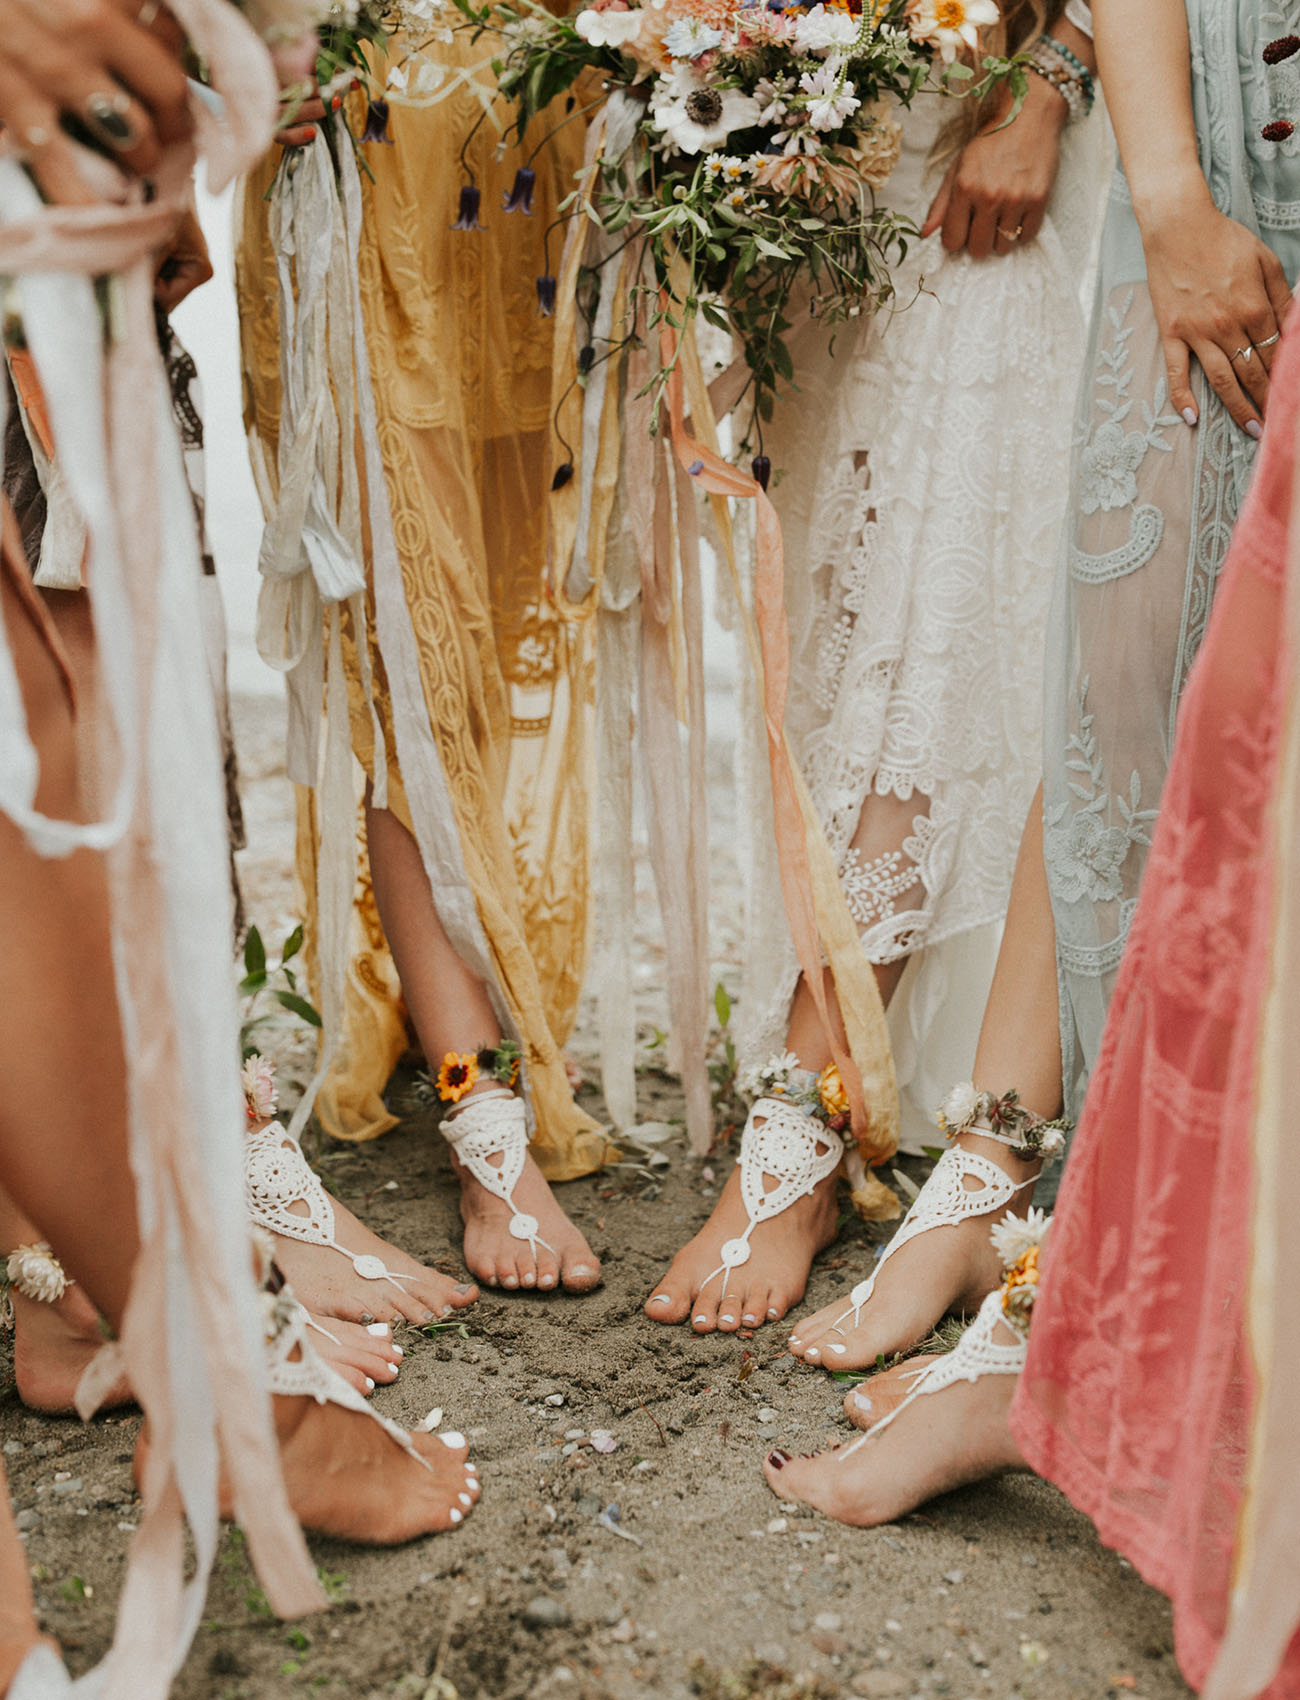 barefoot sandals is a cool idea for a lakeside wedding